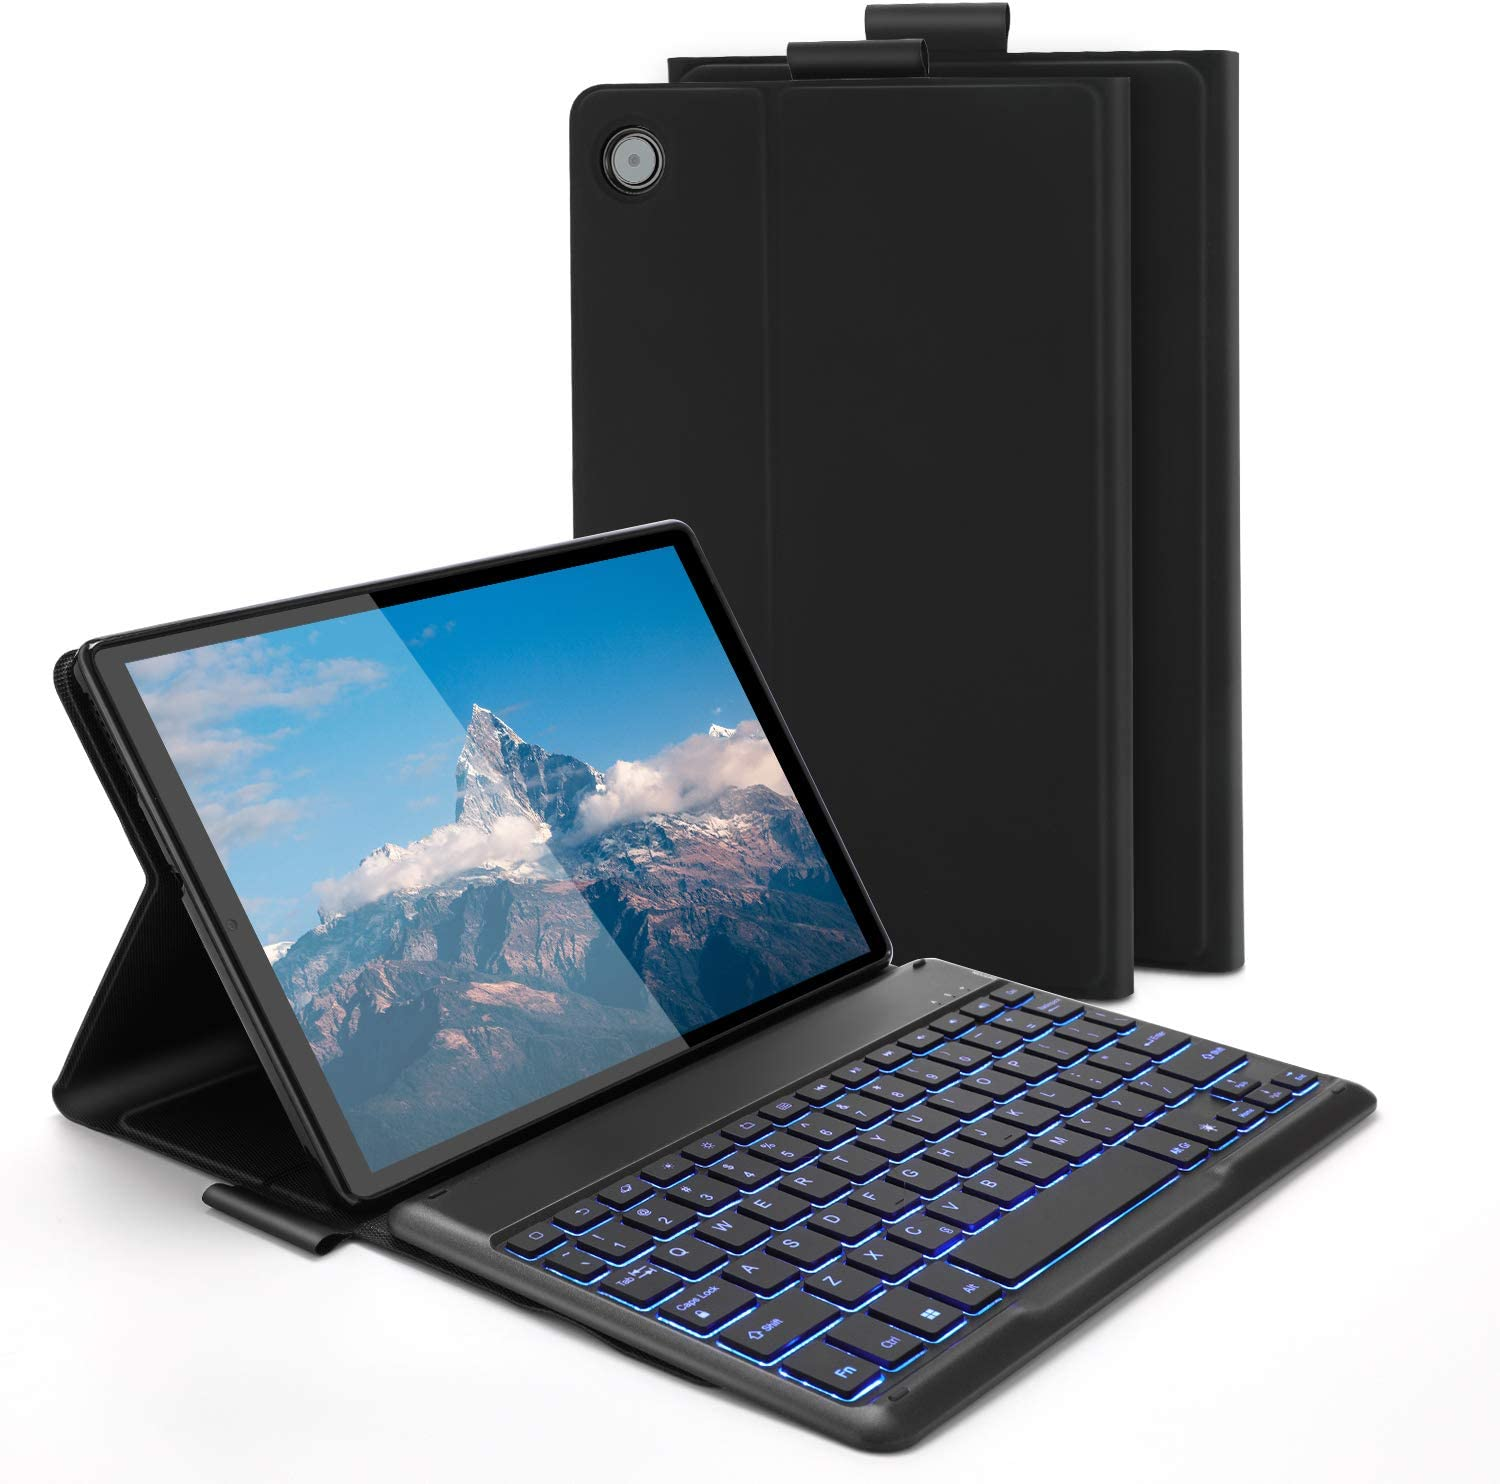 """Backlit Bluetooth Keyboard Case for Lenovo Tab M10 Plus 10.3"""" TB-X606F, Jelly Comb Wireless Detachable Keyboard Case with Protective Cover, Black"""